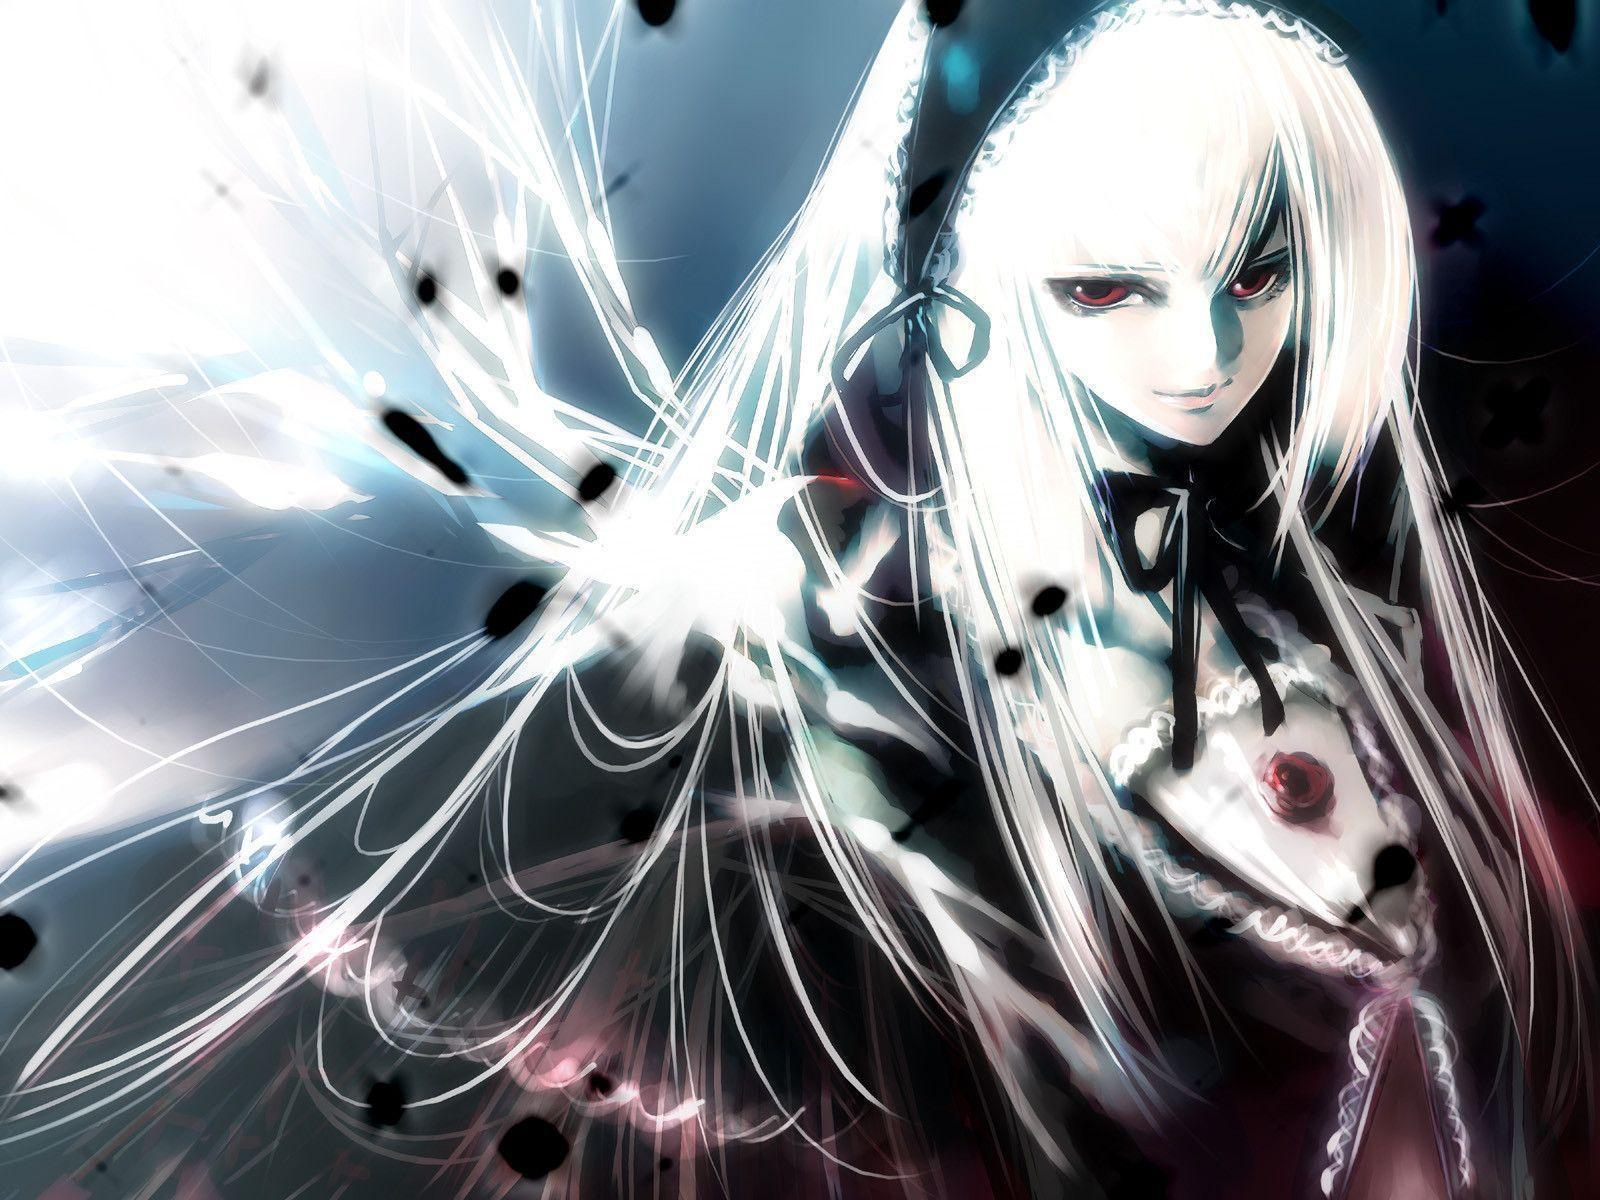 Cool Anime Wallpapers HD - Wallpaper Cave